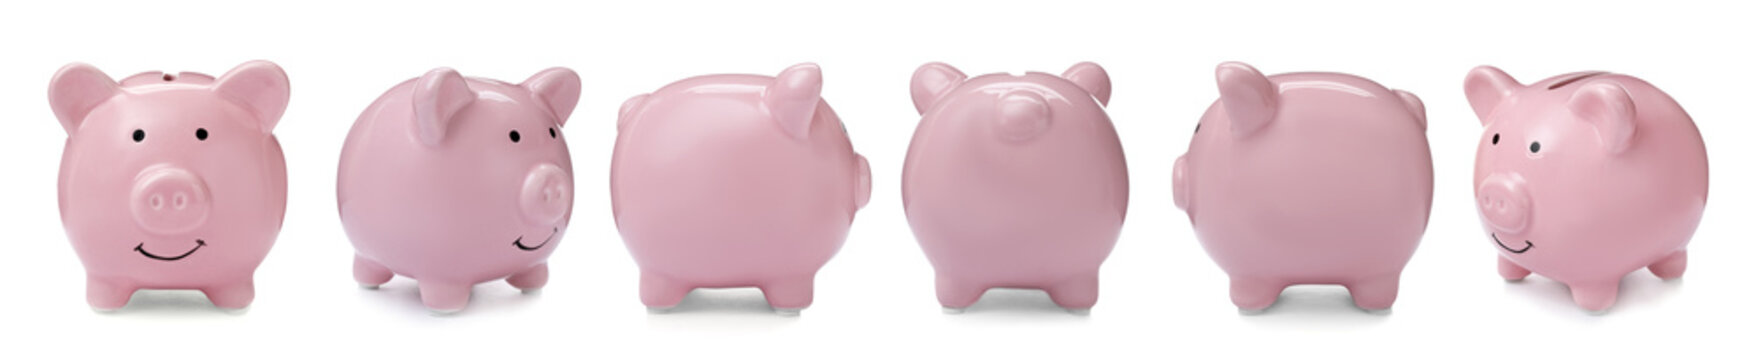 Set with pink piggy bank from different views on white background